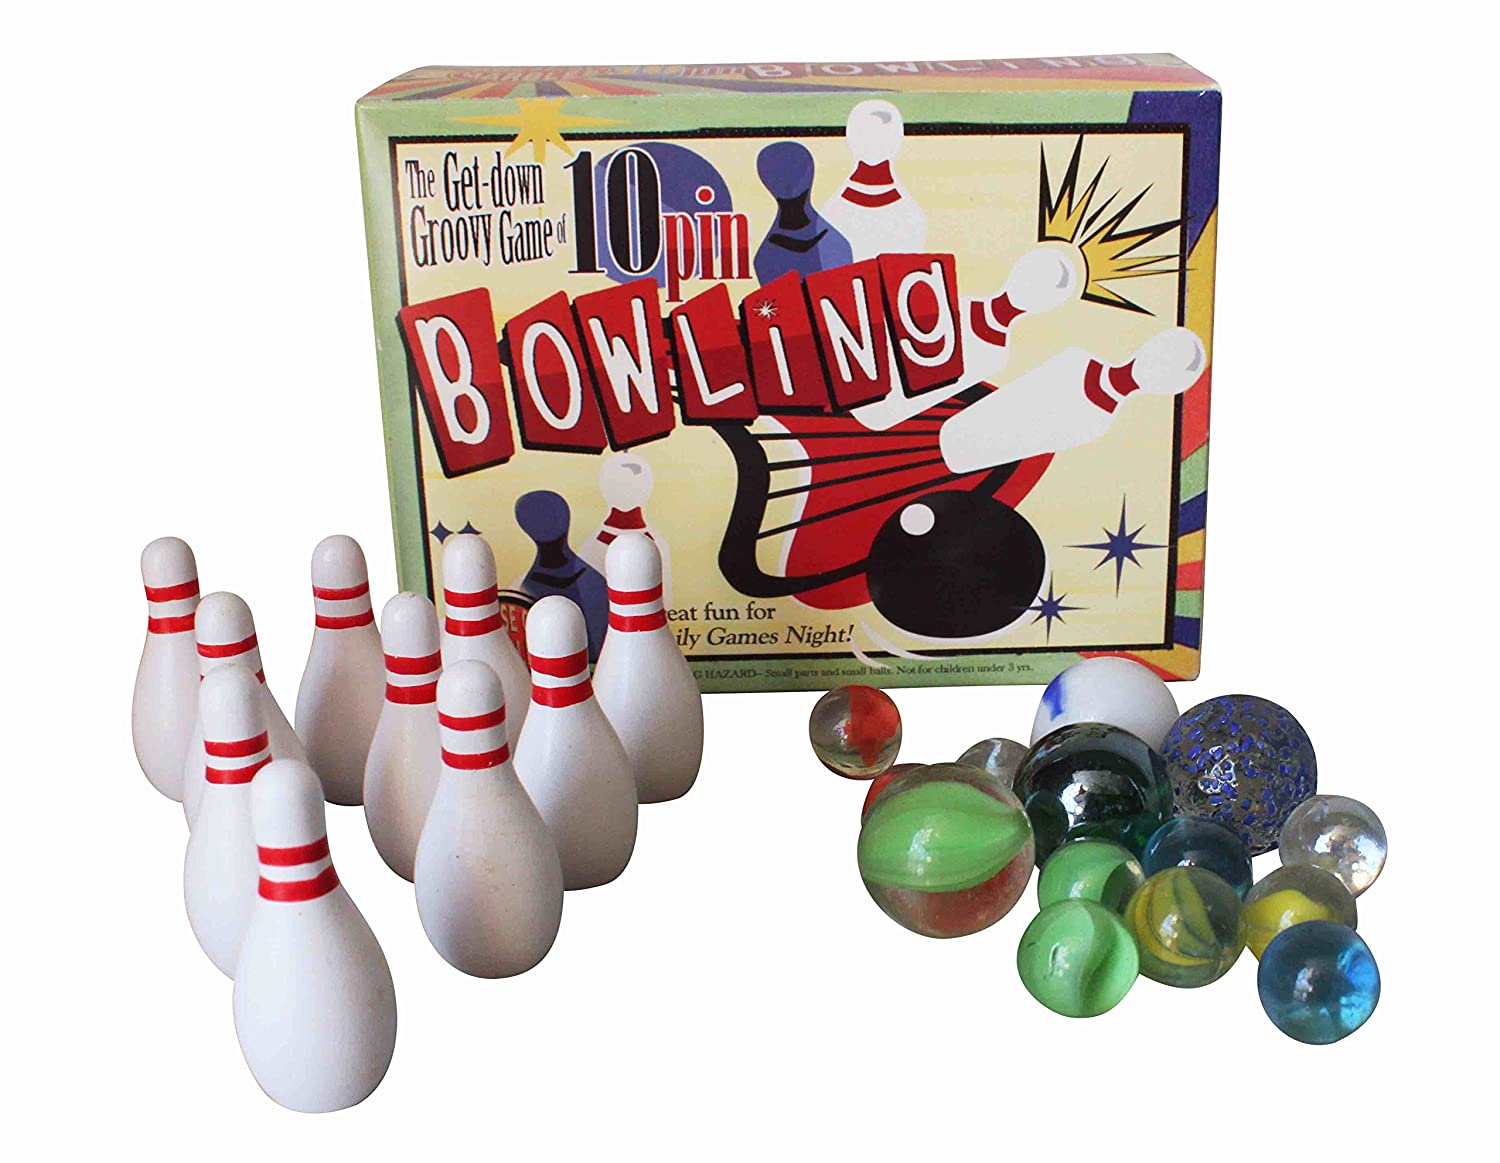 NEW MINIATURE MINI 10 PIN BOWLING TRADITIONAL TABLE GAME WITH GLASS MARBLES HOM